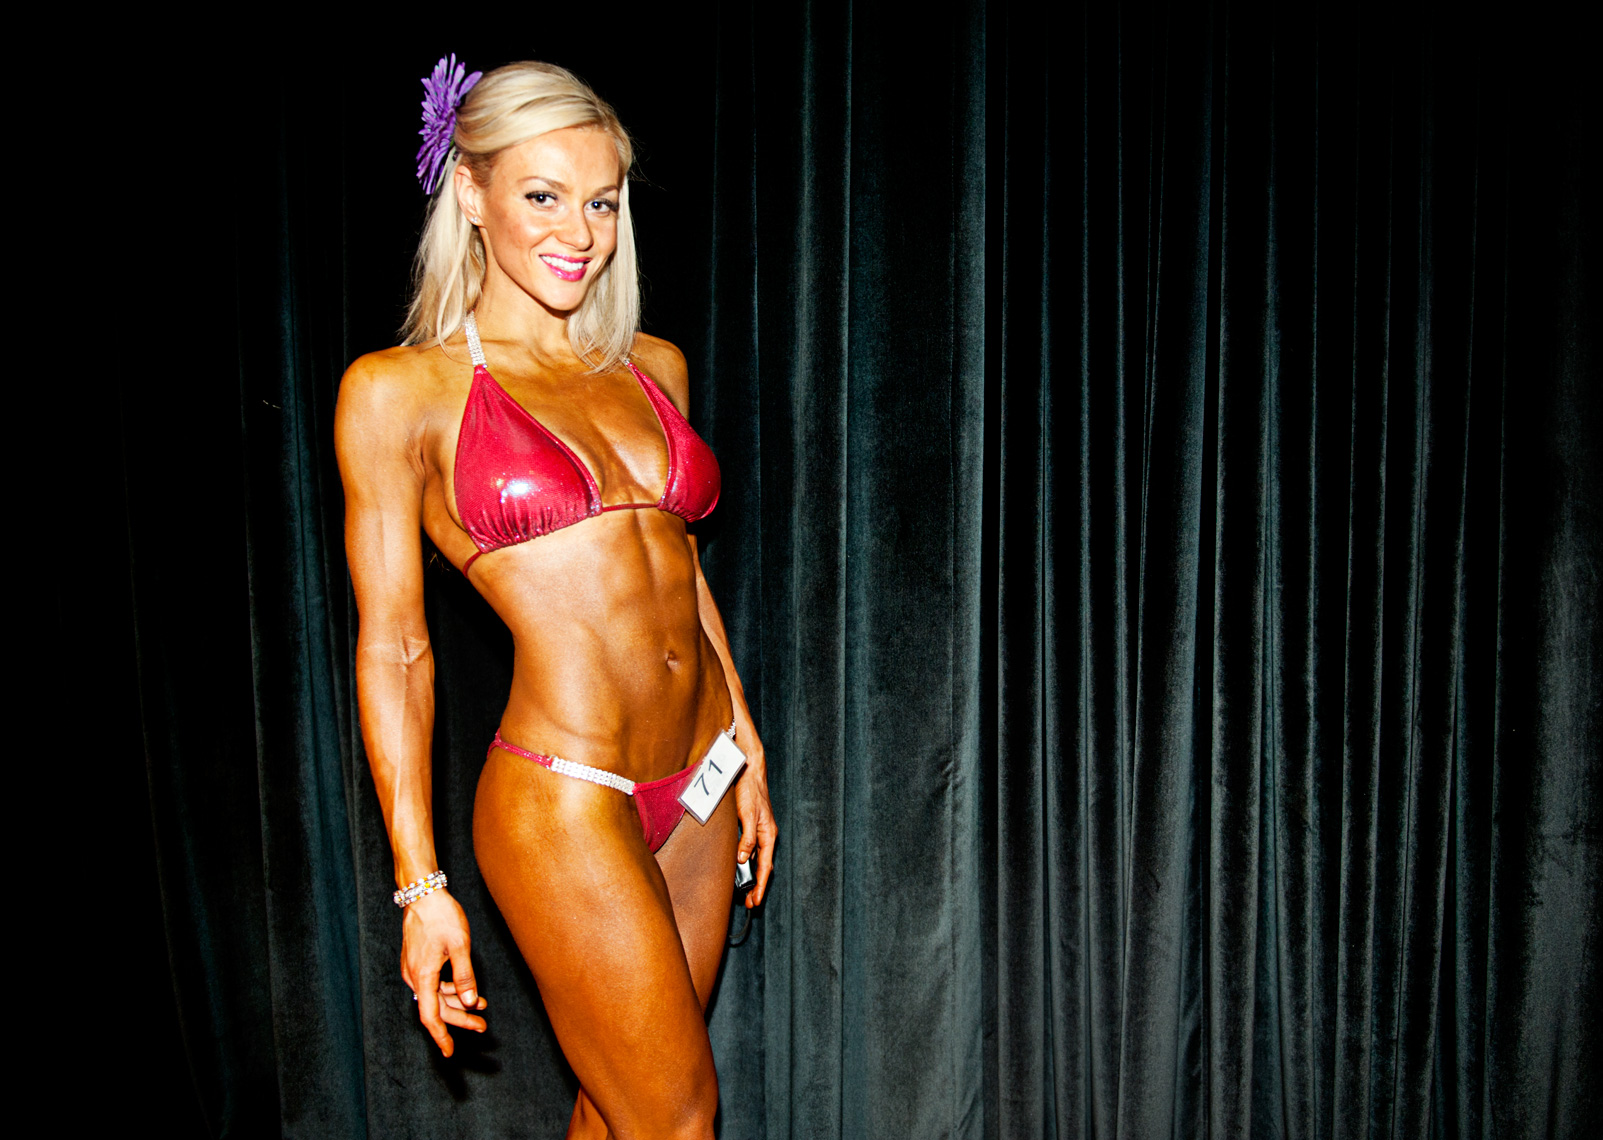 Webb Chappell photographs the Jay Cutler Classic